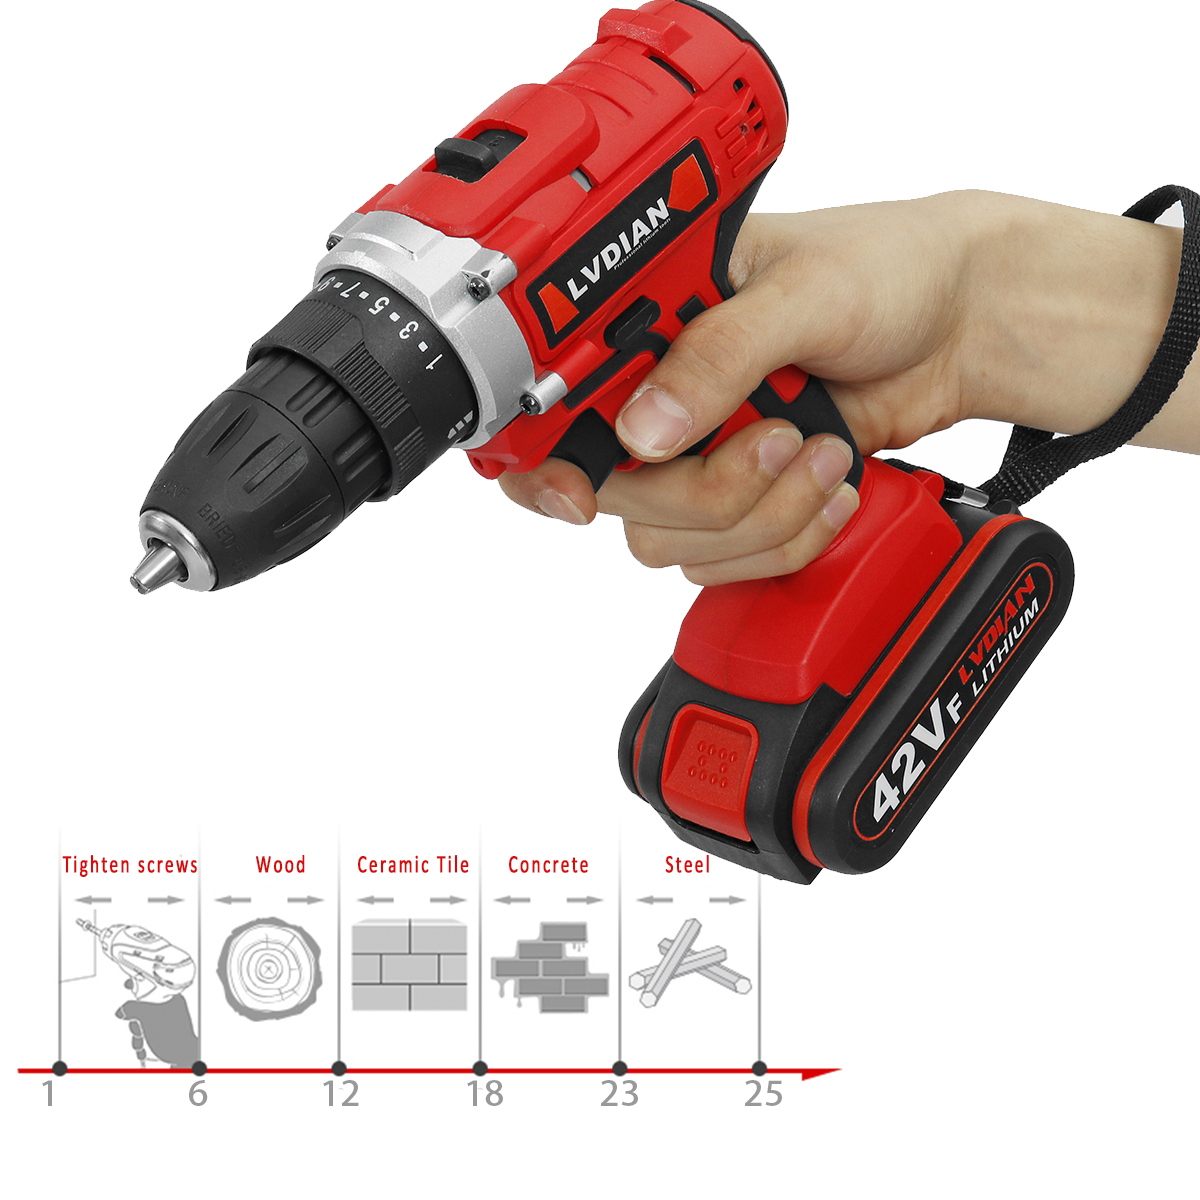 42V 25+1 Torque Cordless Rechargeable Electric Drill Screwdriver LED Work Light